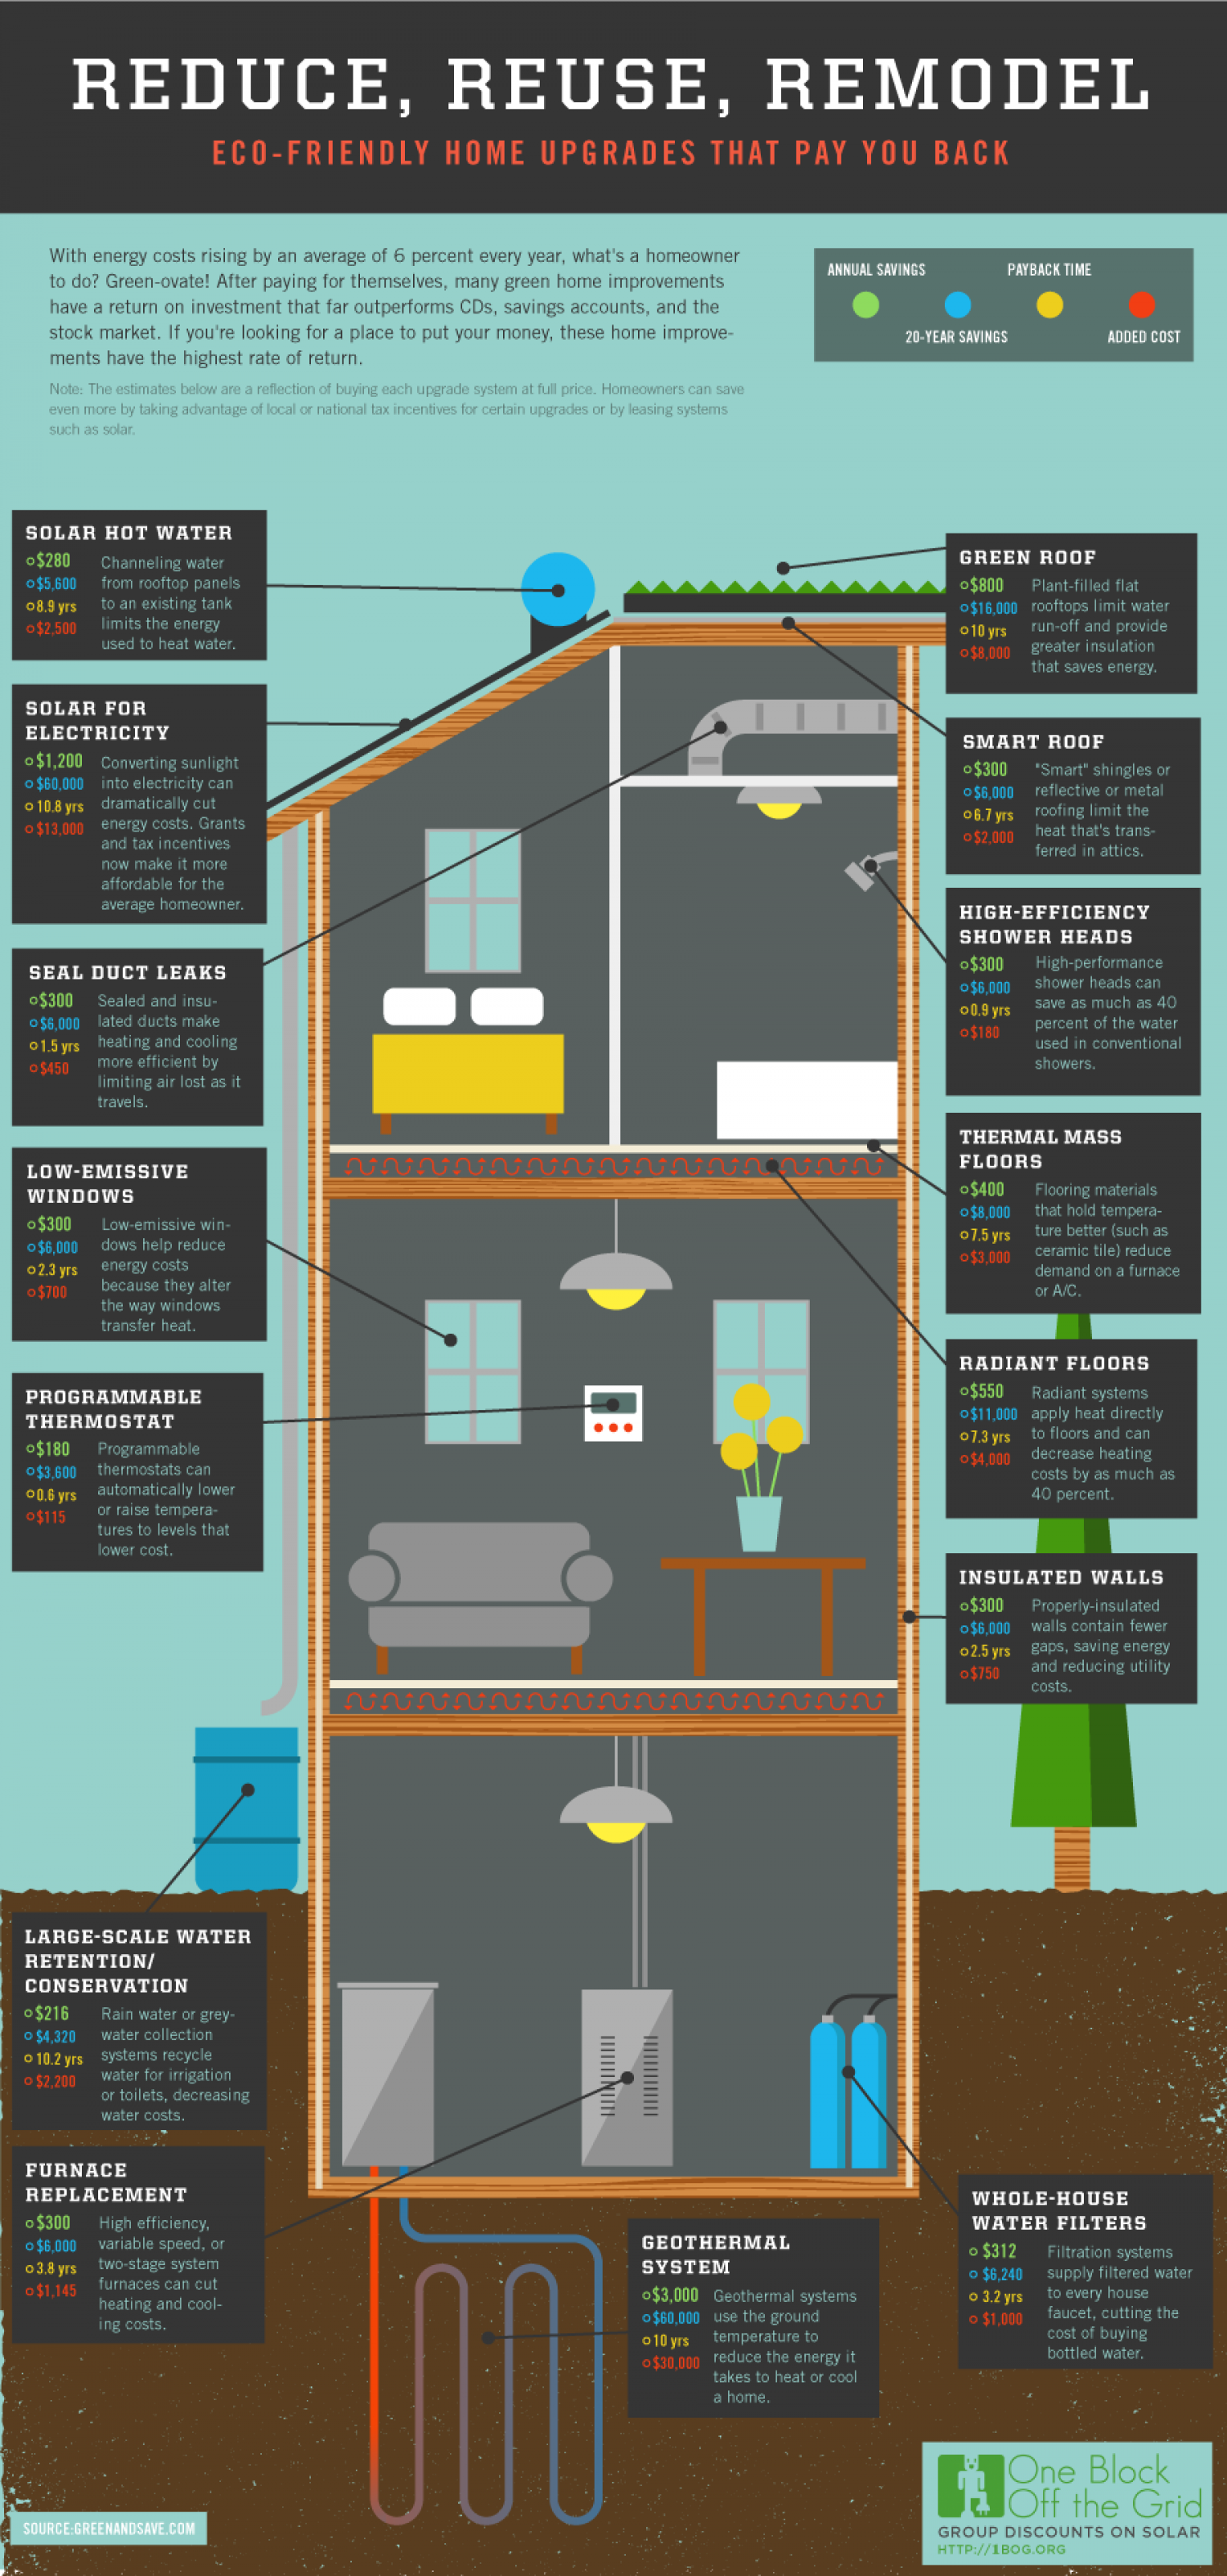 Reuse, Reduce, Remodel Infographic